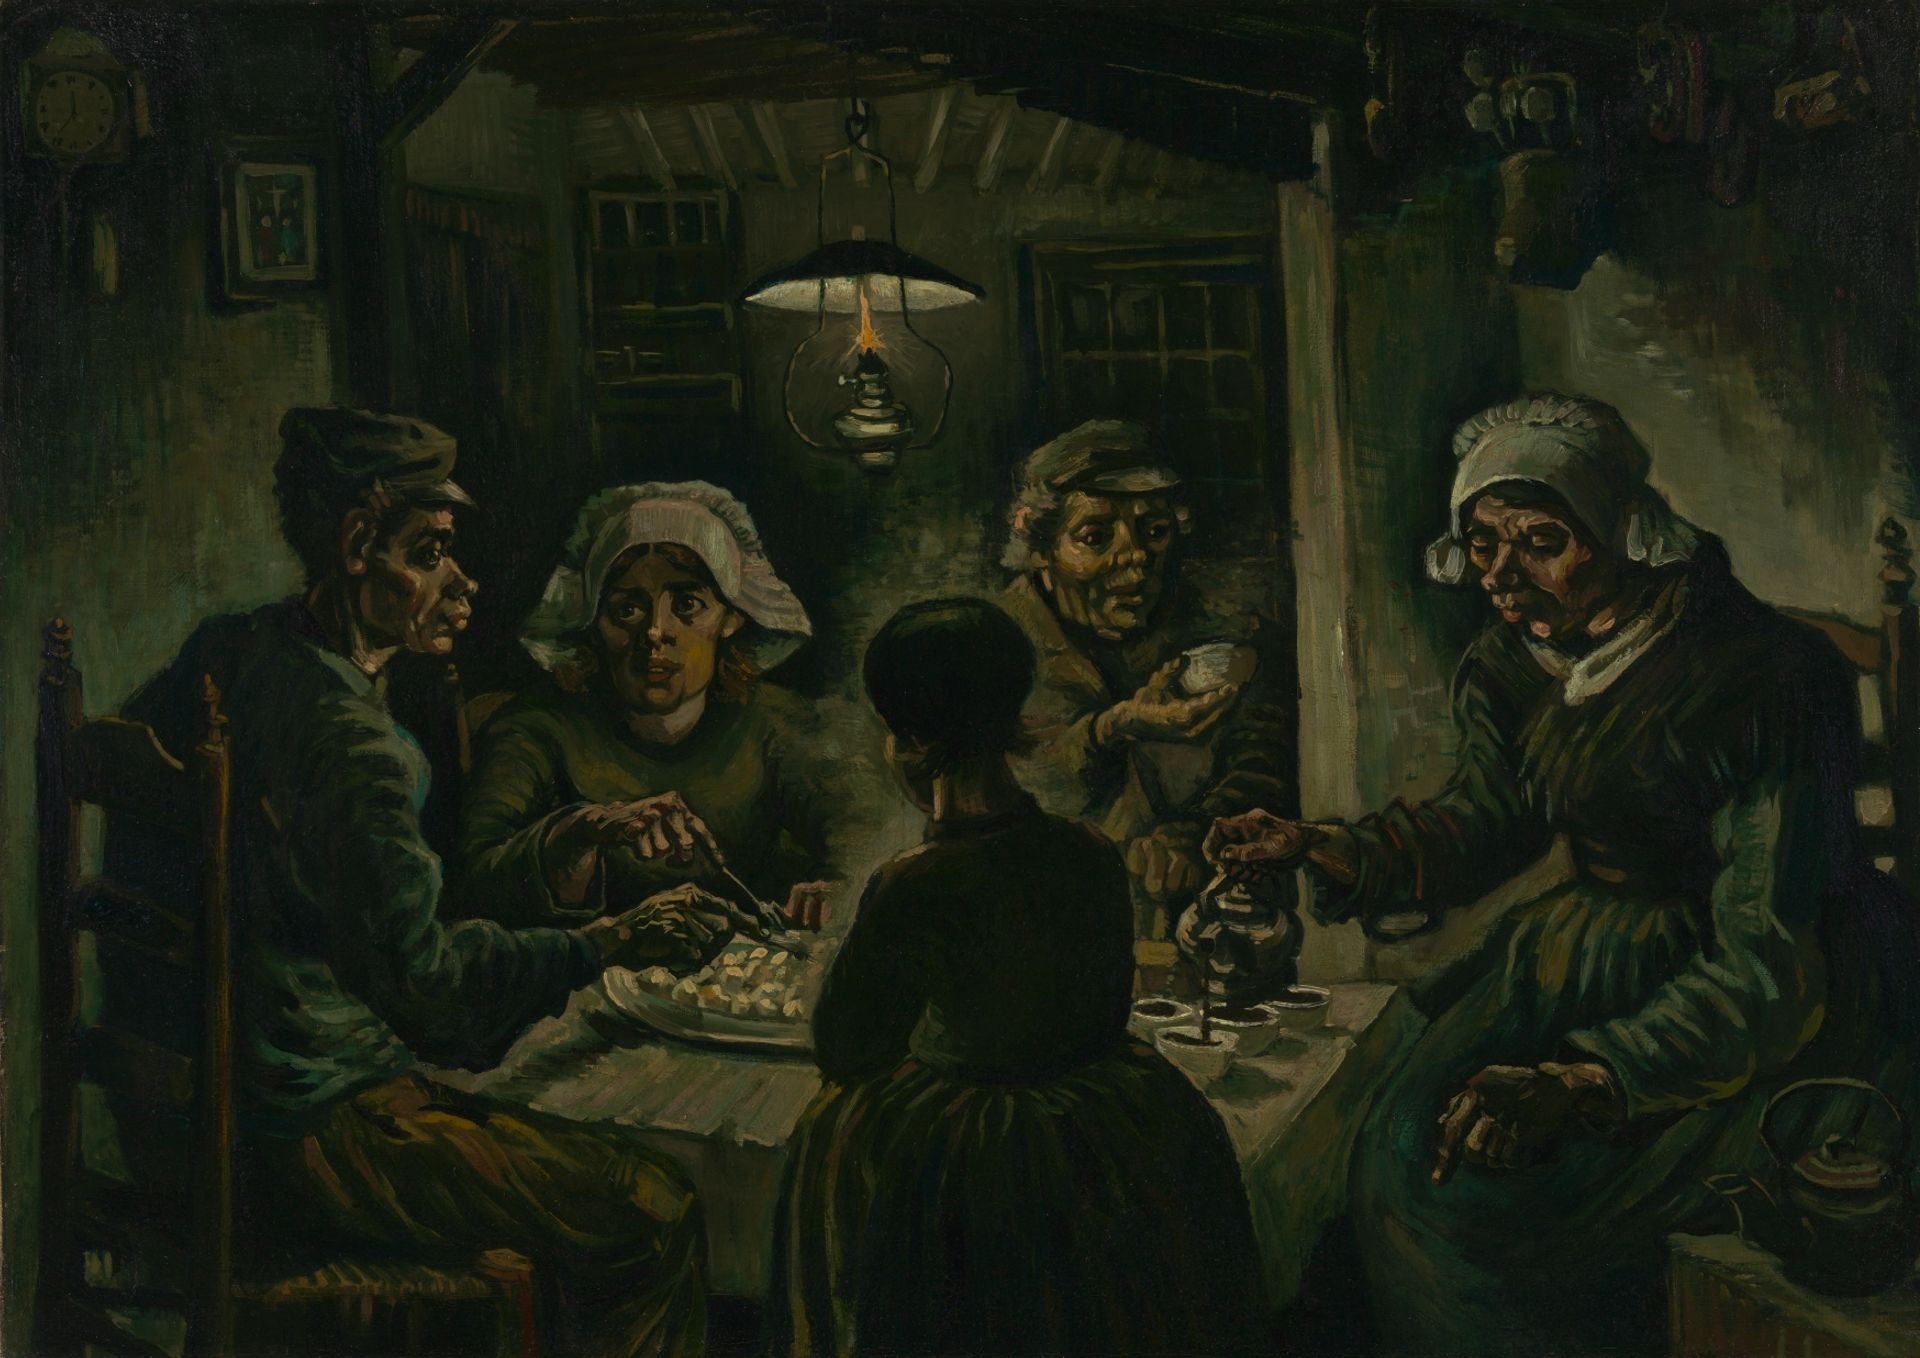 Vincent van Gogh's The Potato Eaters (April-May 1885) Courtesy of the Van Gogh Museum, Amsterdam (Vincent van Gogh Foundation)